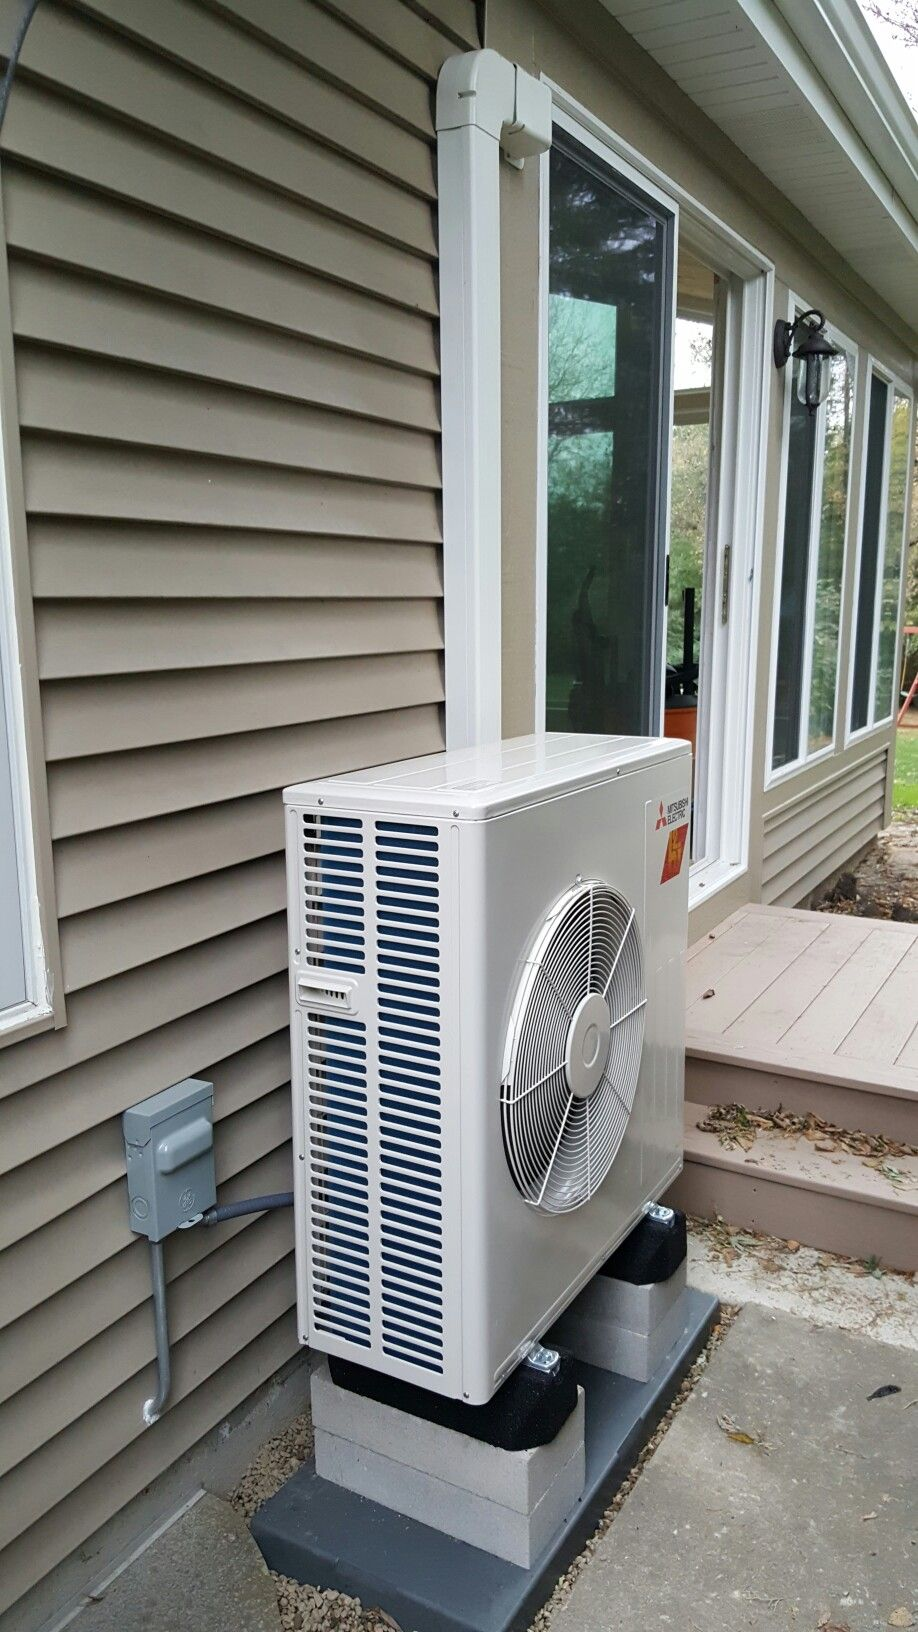 small resolution of fh18 mitsubishi ductless heating and cooling system installed in a sunroom by a compass heating and air conditioning inc www compassheatingandair com